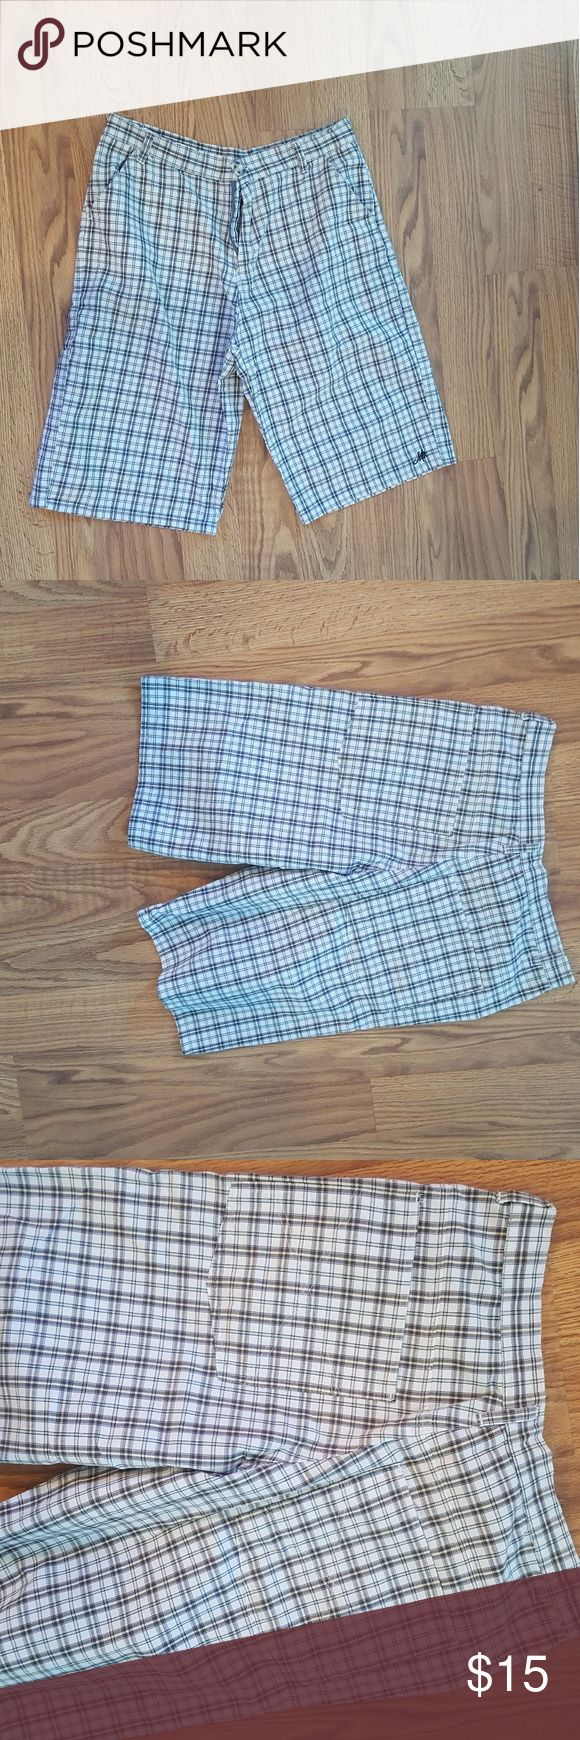 Men's plaid shorts Mens like new plaid shorts size 34  pet and smoke free home.  no holes or stains. Shorts Flat Front